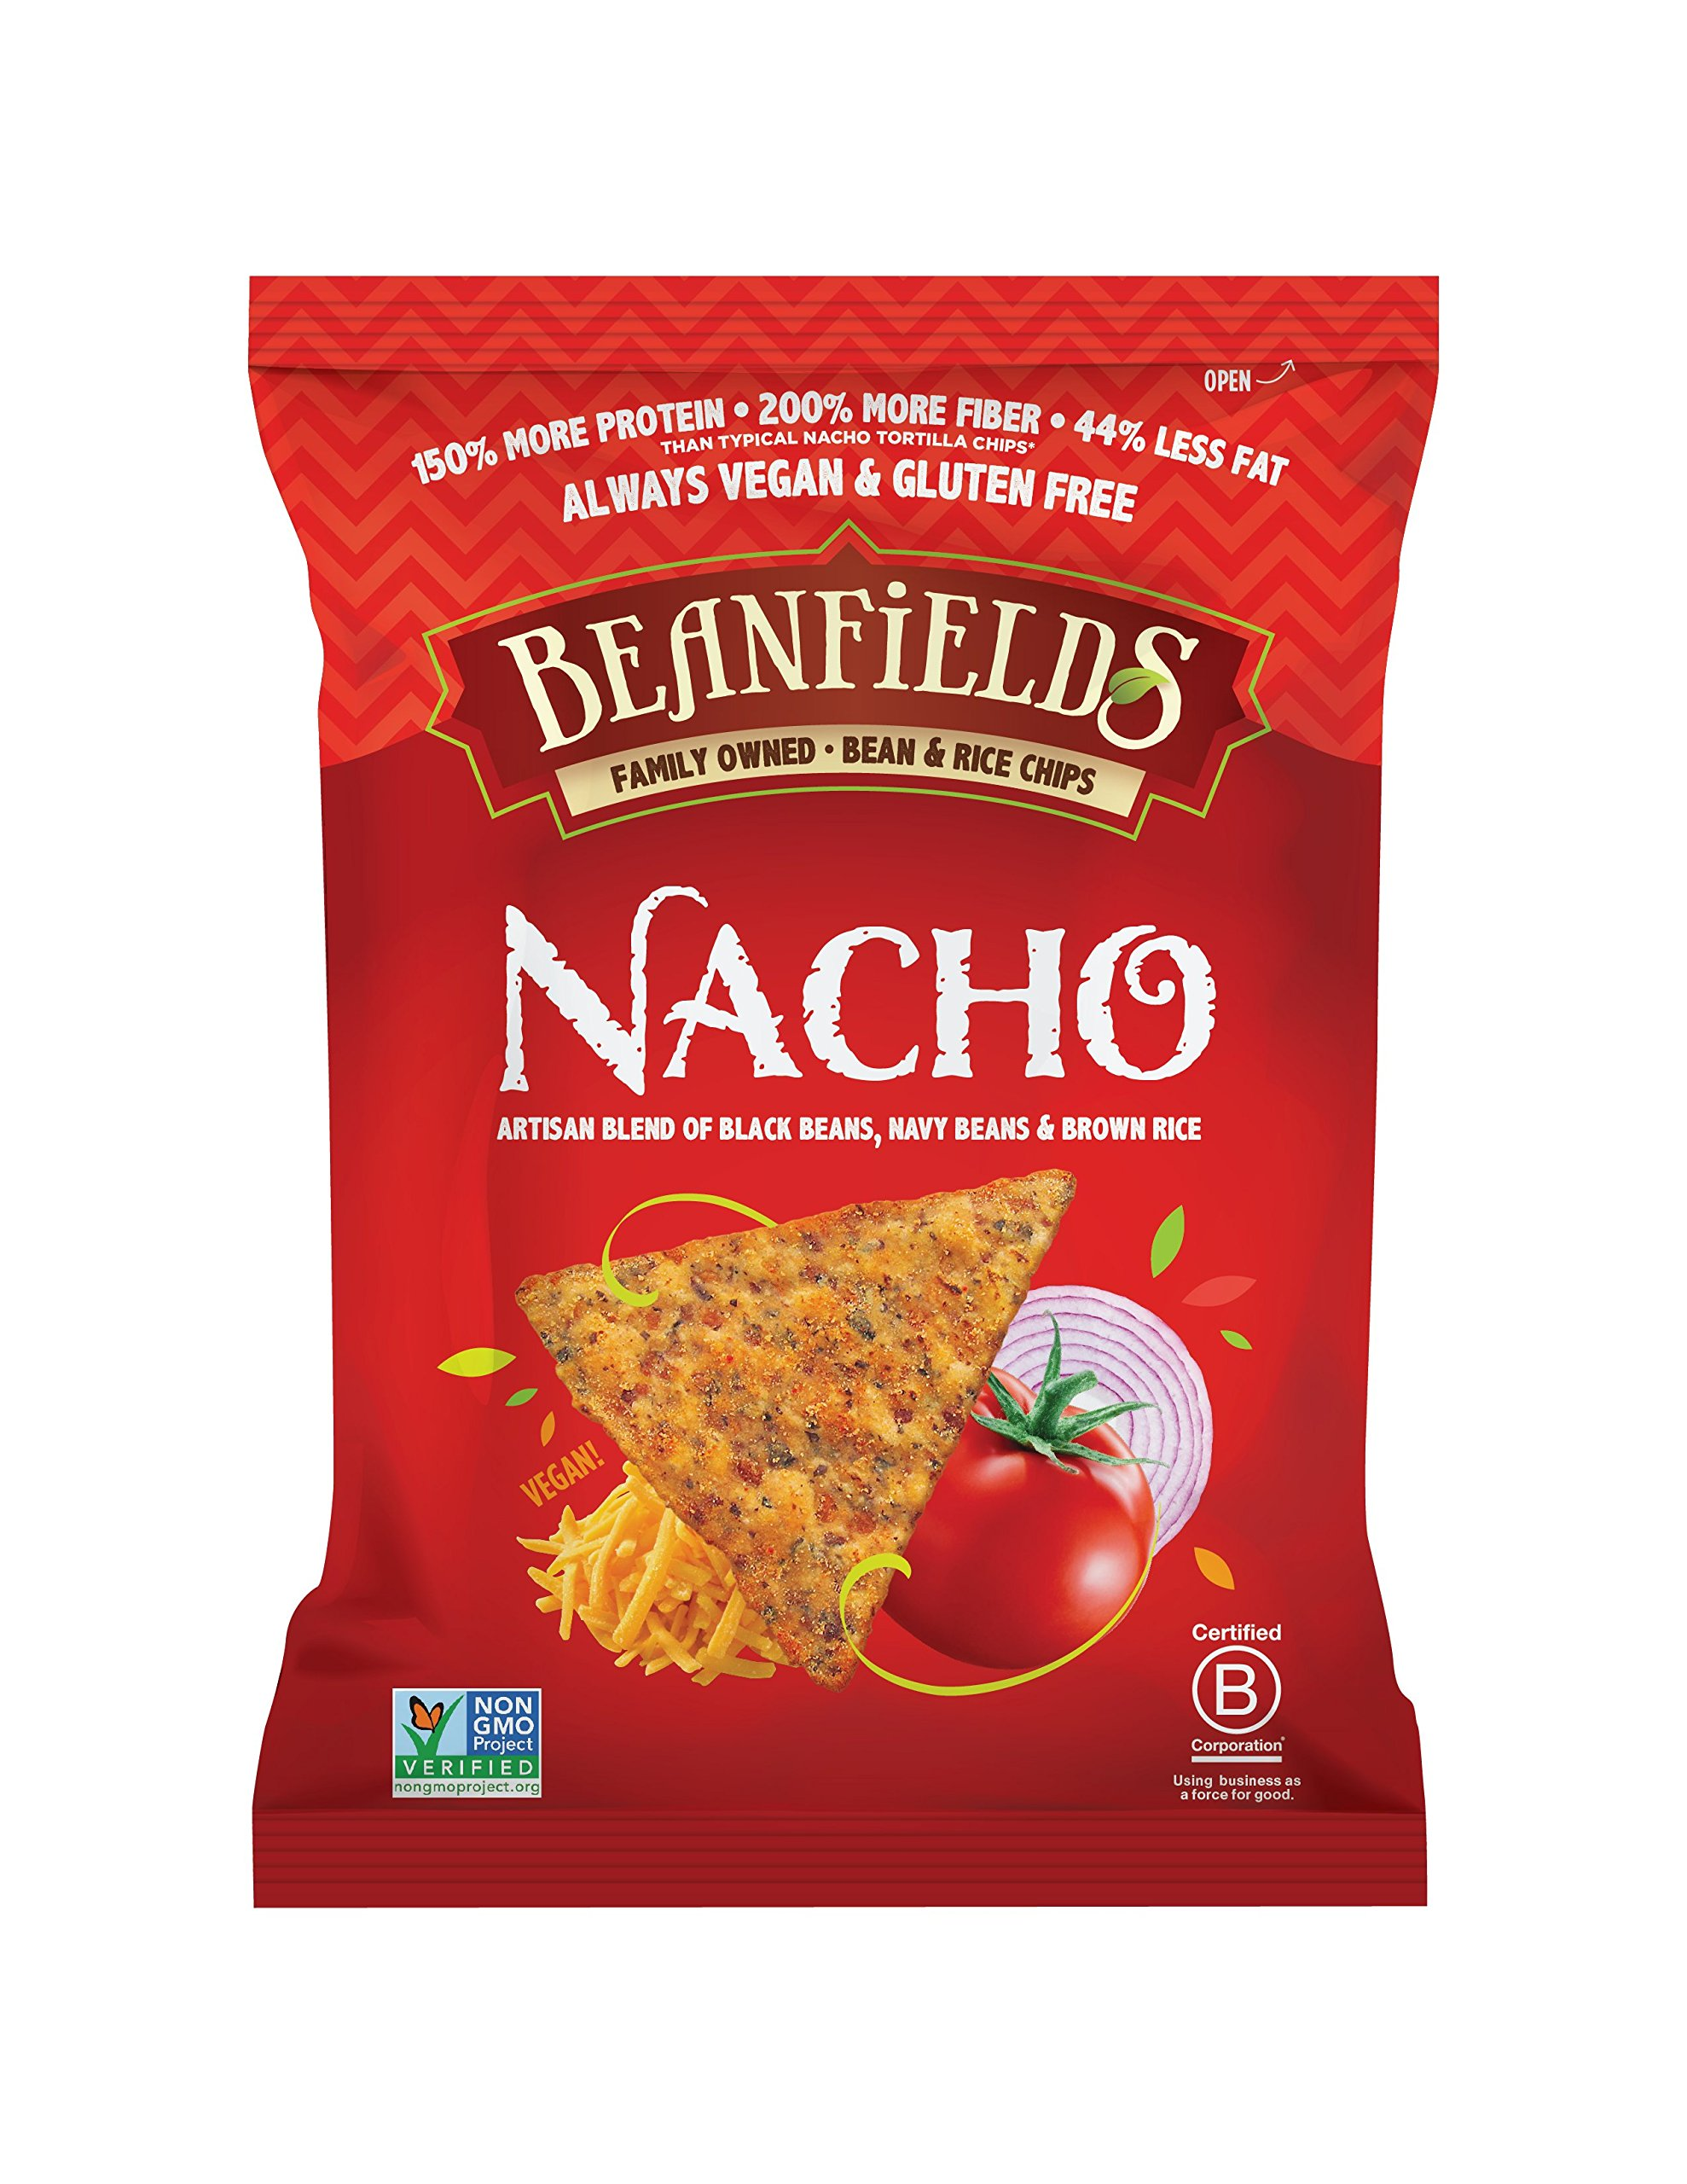 Beanfields Bean & Rice Chips, Nacho, 1.5 Ounce (Pack of 24) by BEANFIELDS (Image #1)